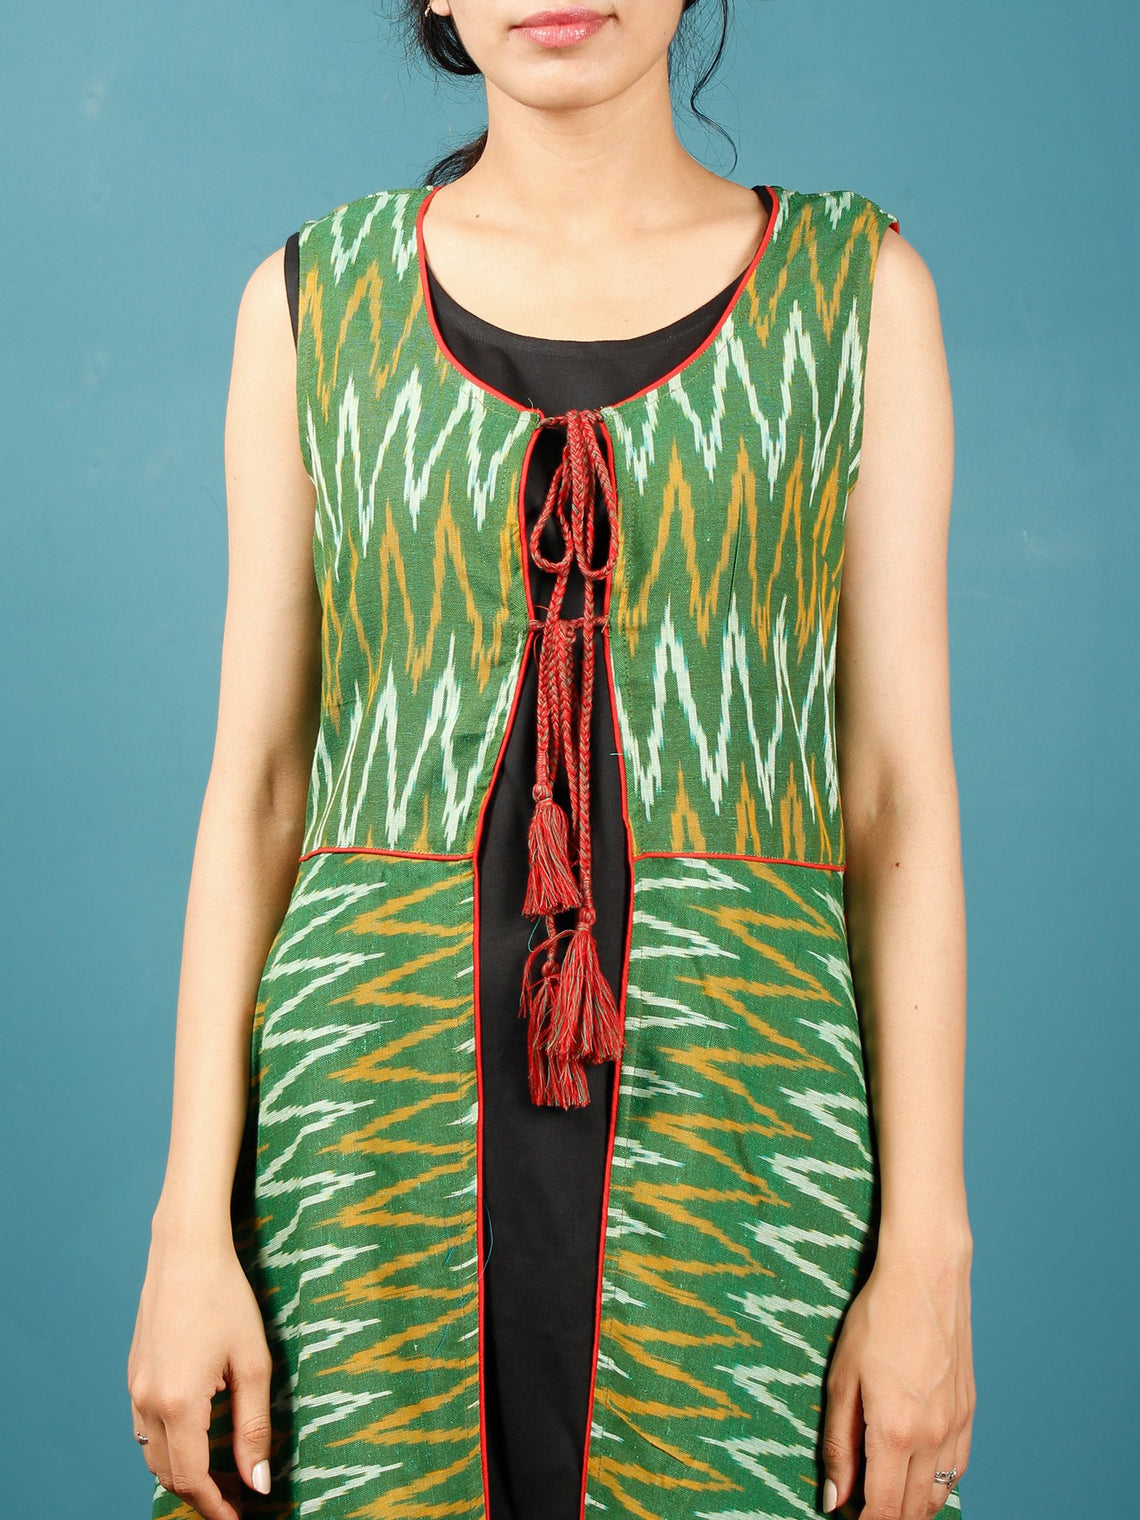 Green Mustard Black Hand Woven Ikat Cotton Cape Dress With Tassels  - D268F952